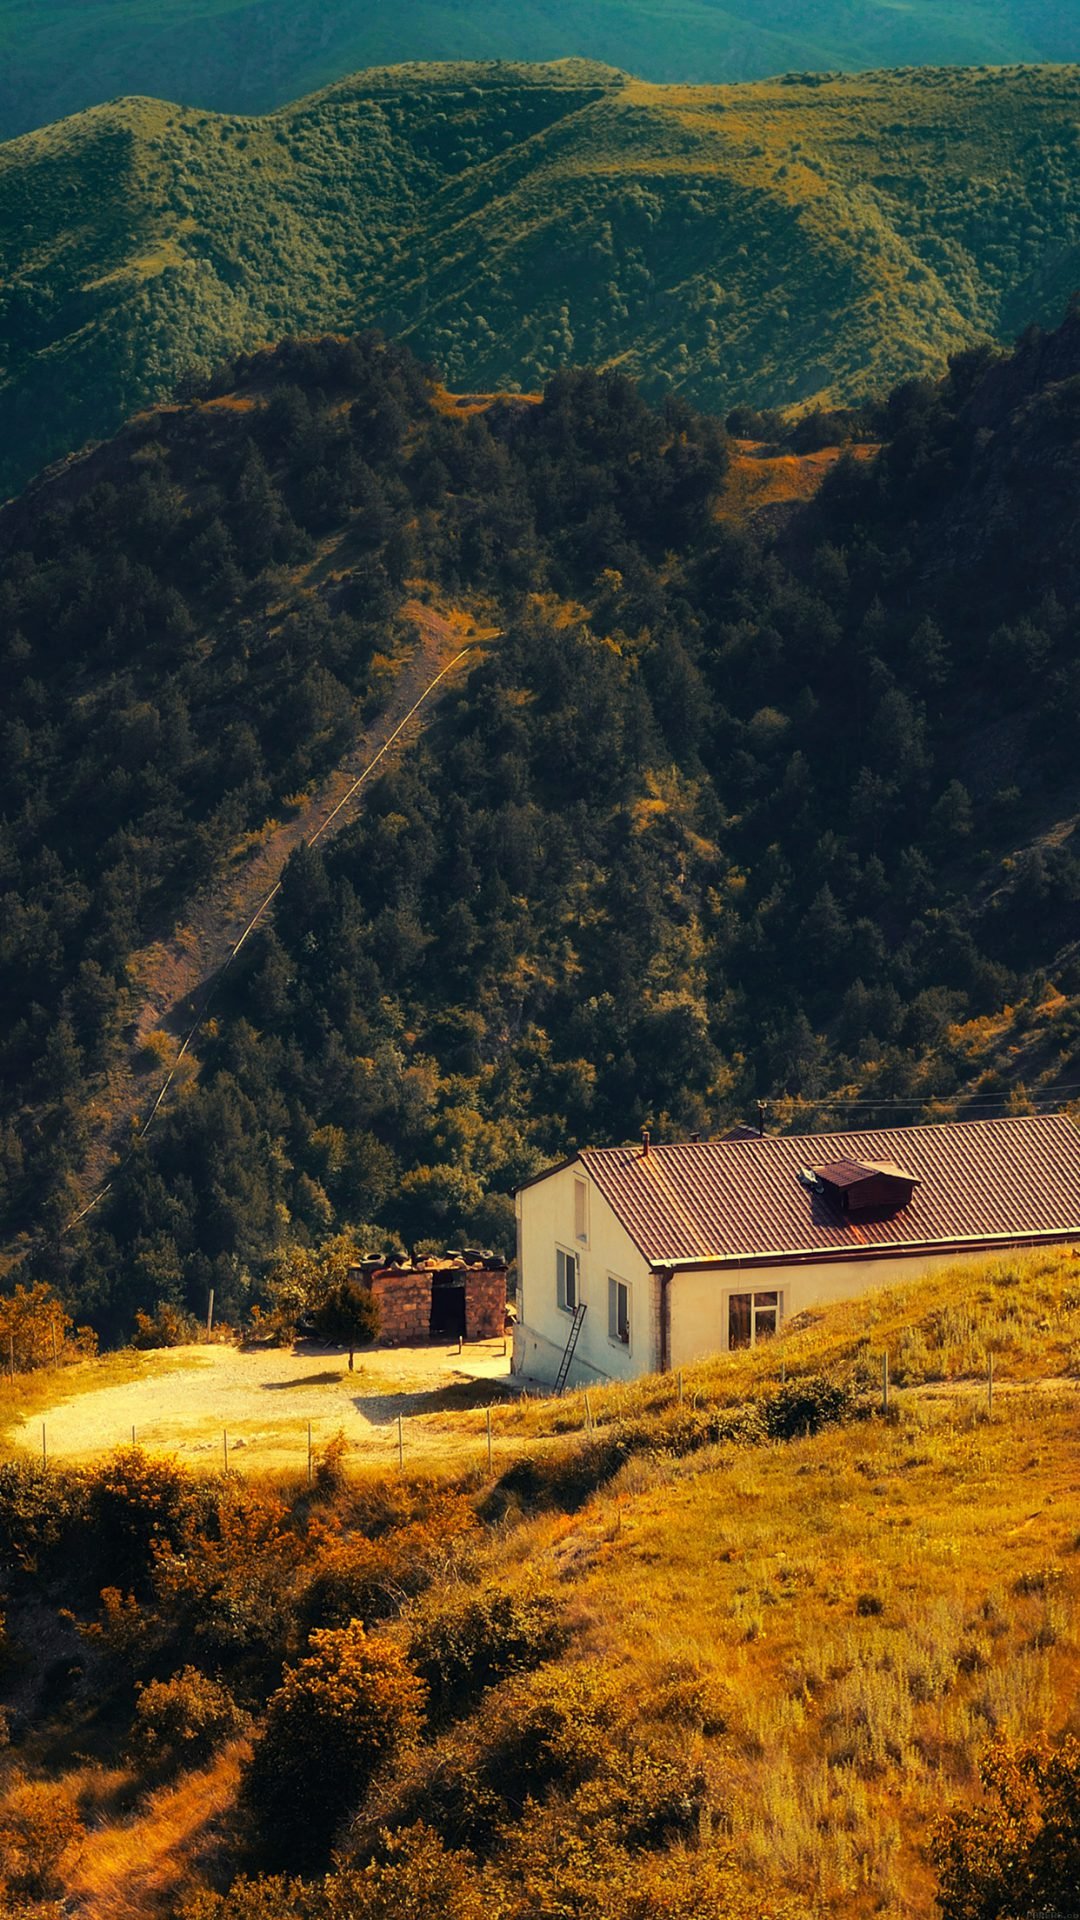 Karabakh Armenia Nature With Mountain House Fall